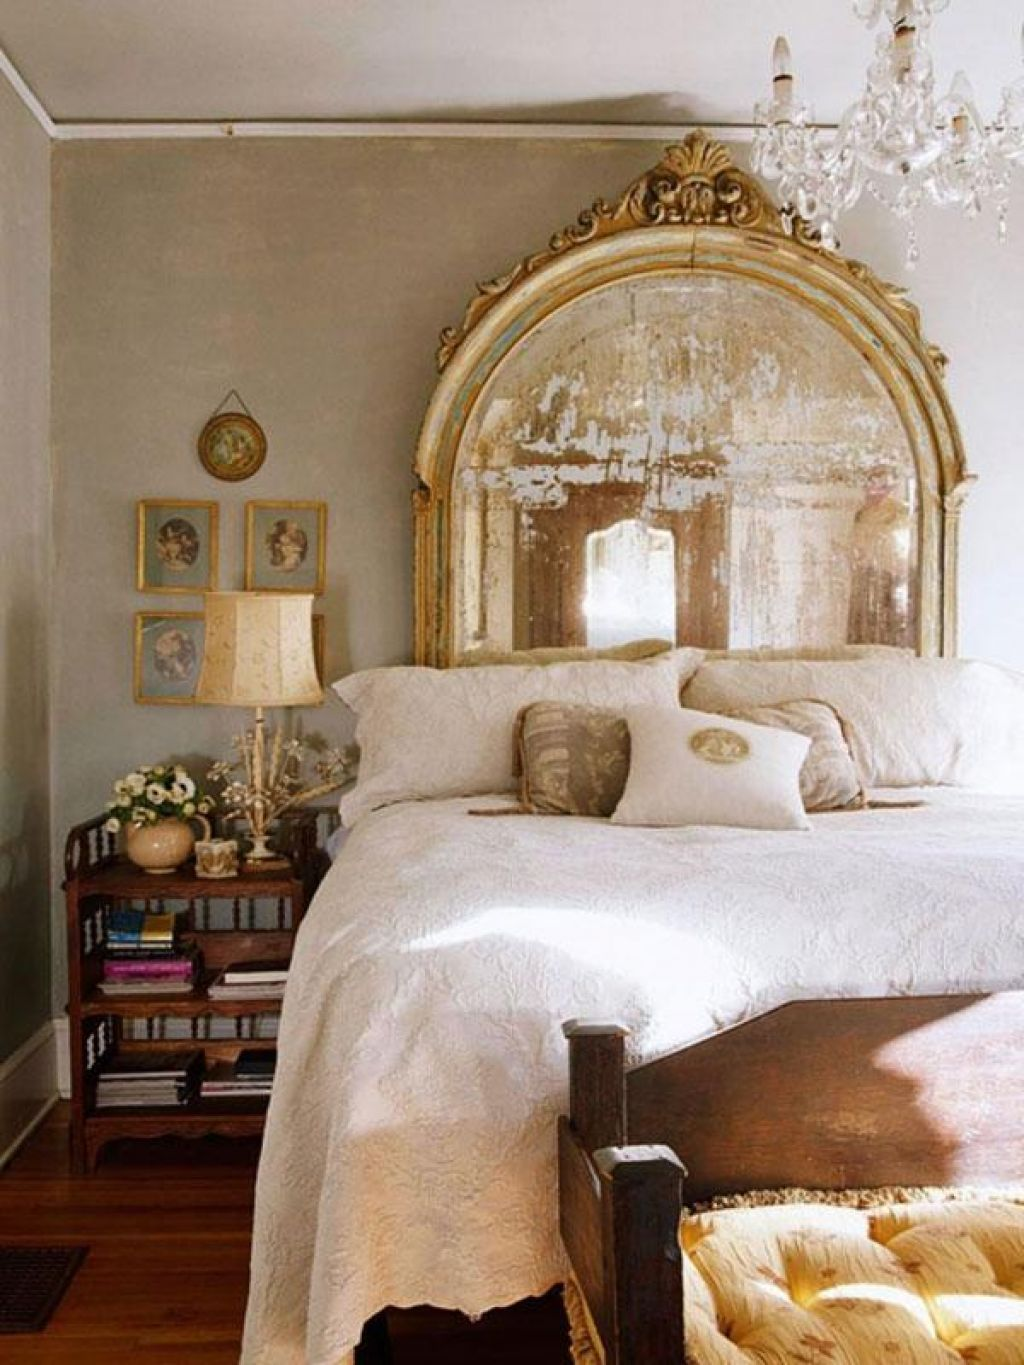 Creative Headboard With Mirror Idea For Special And Classy Bedroom ...